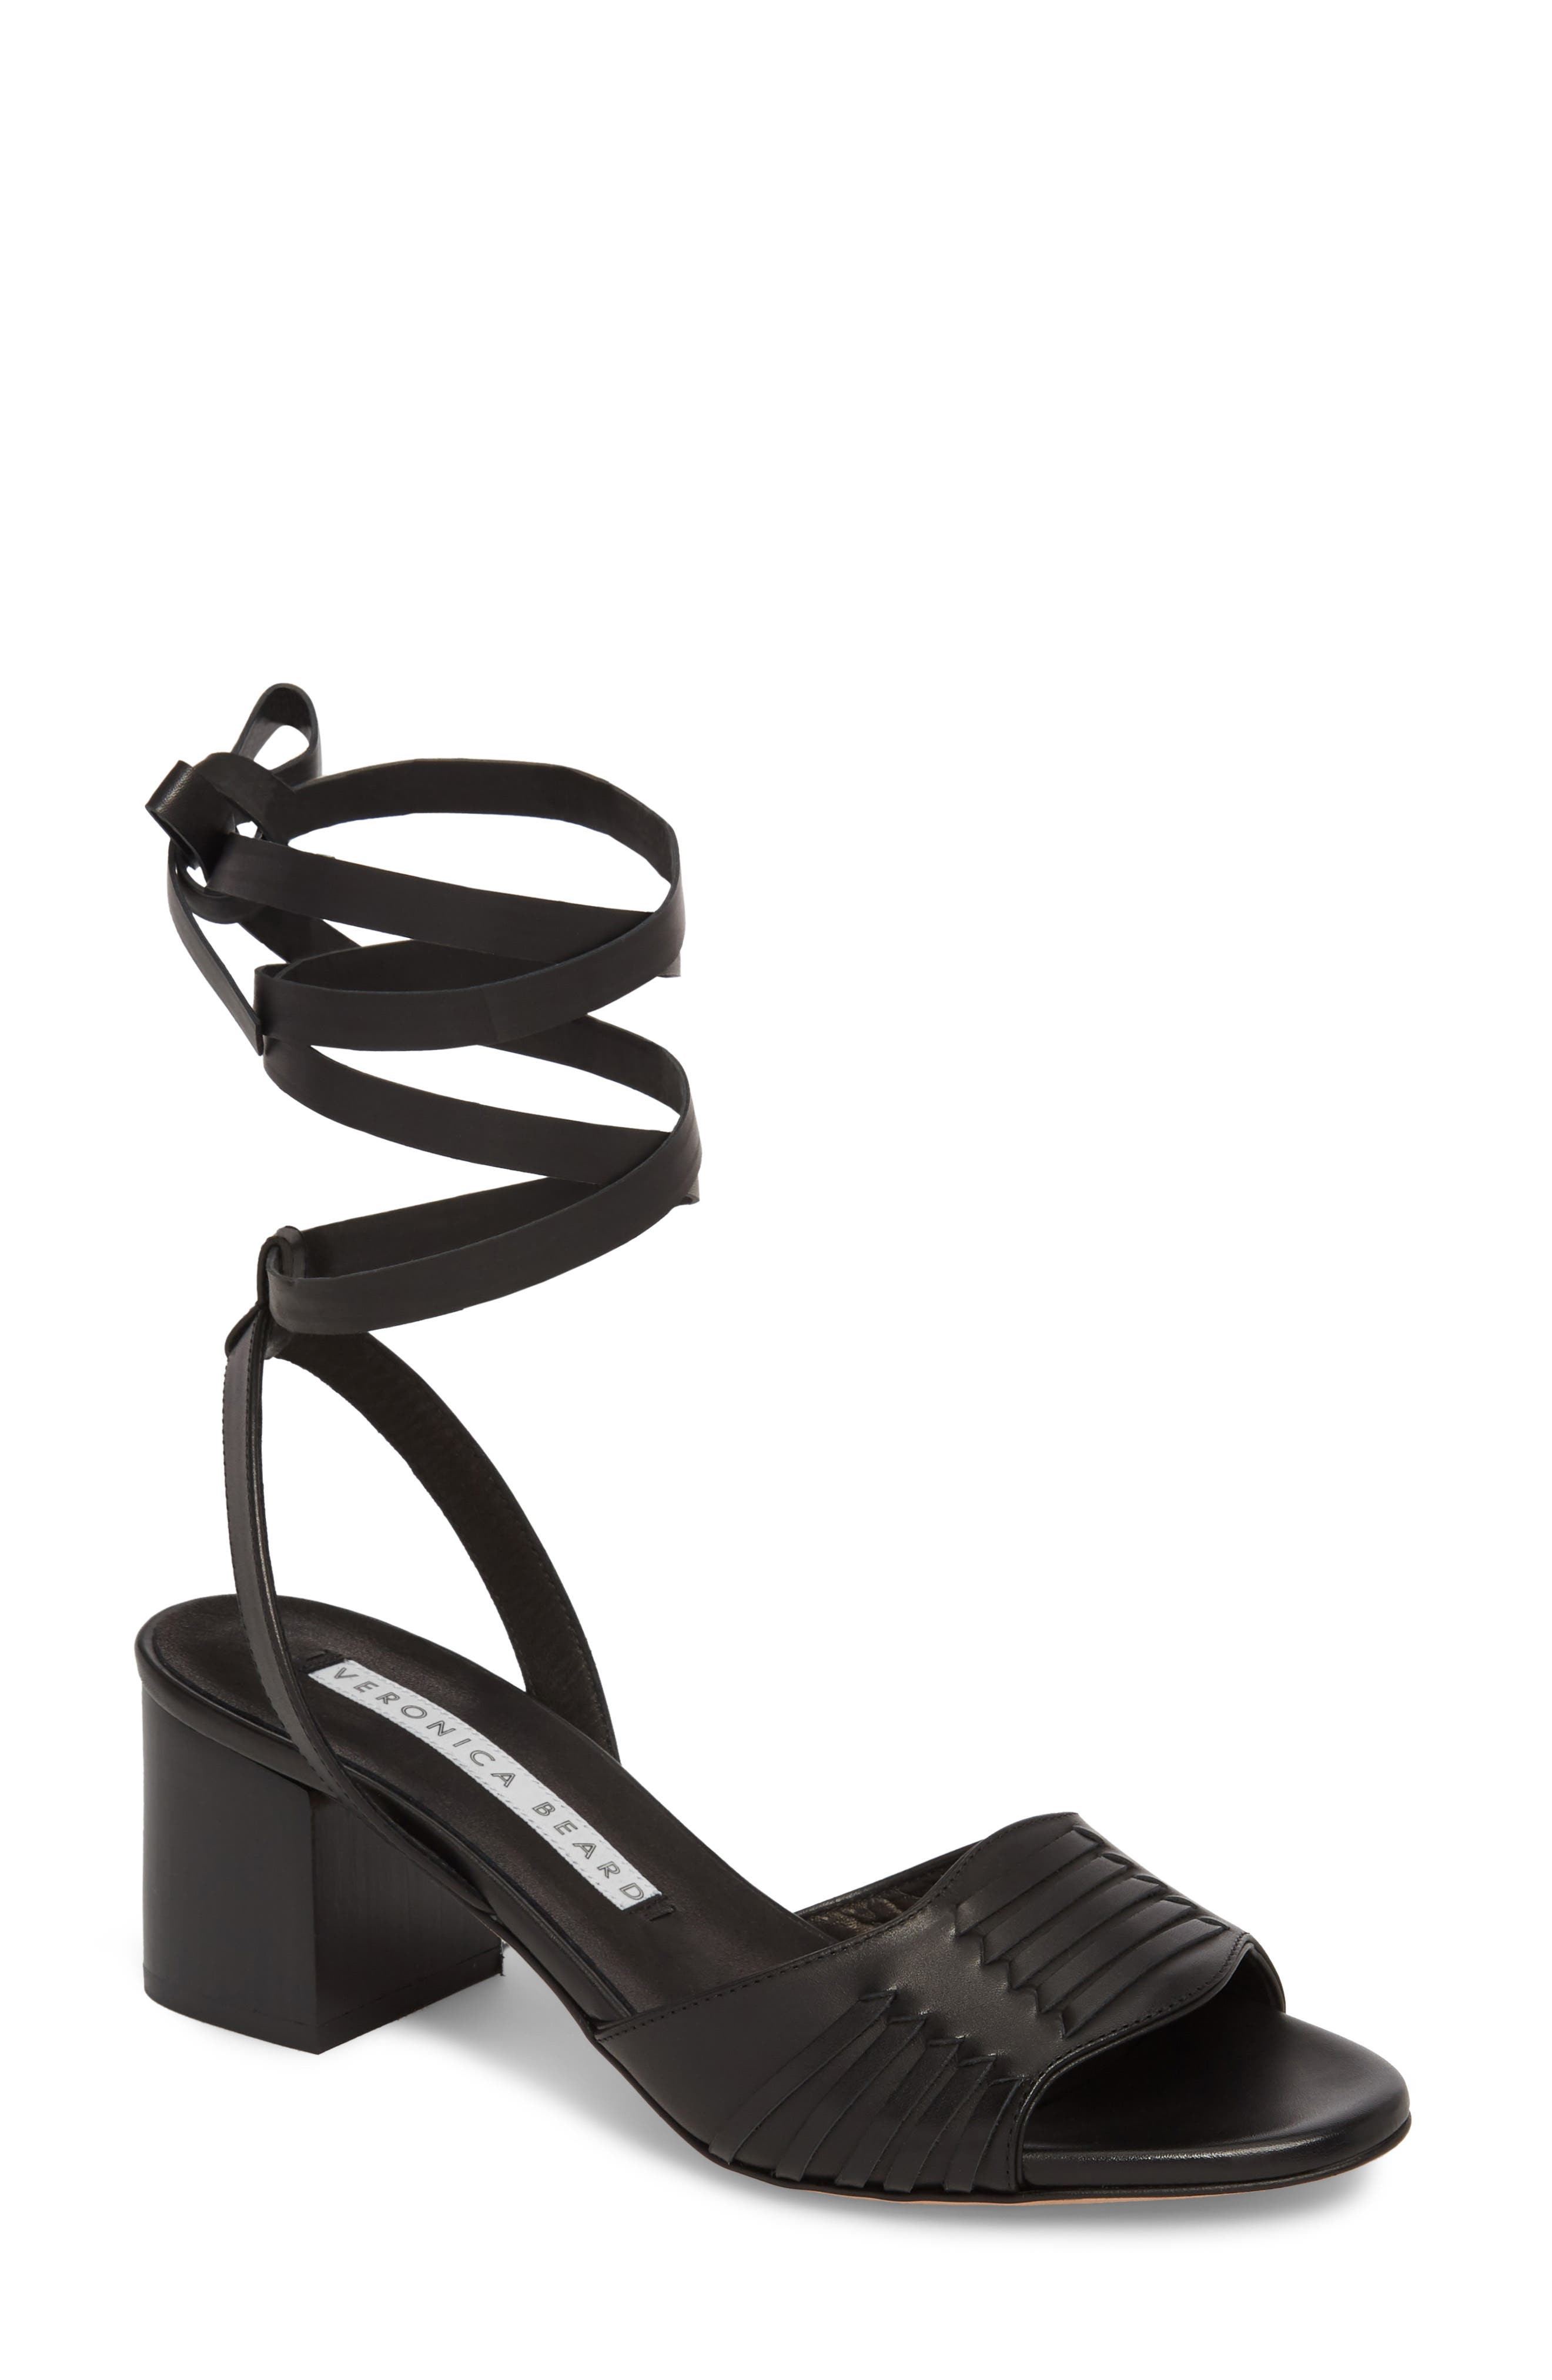 Brody Ankle Wrap Sandal,                         Main,                         color, 001